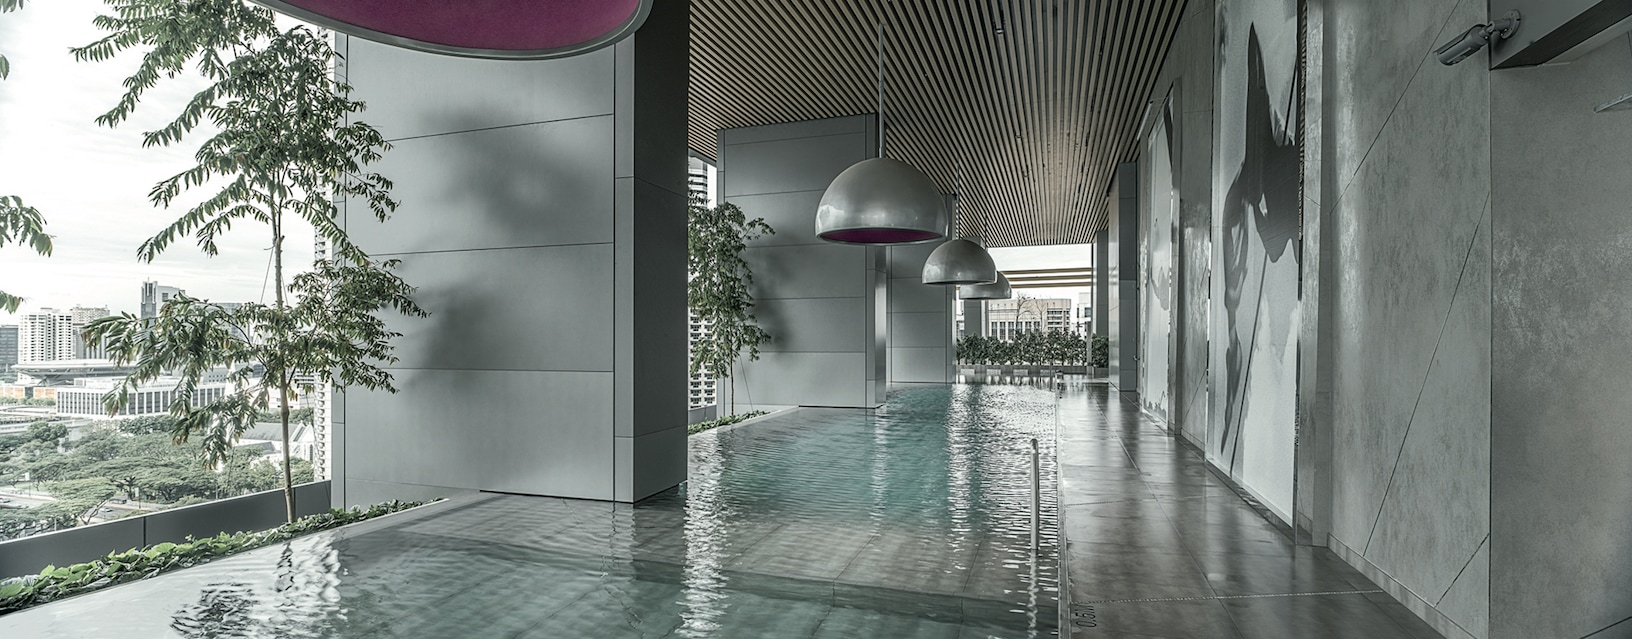 Laminam for South Beach Hotel in Singapore